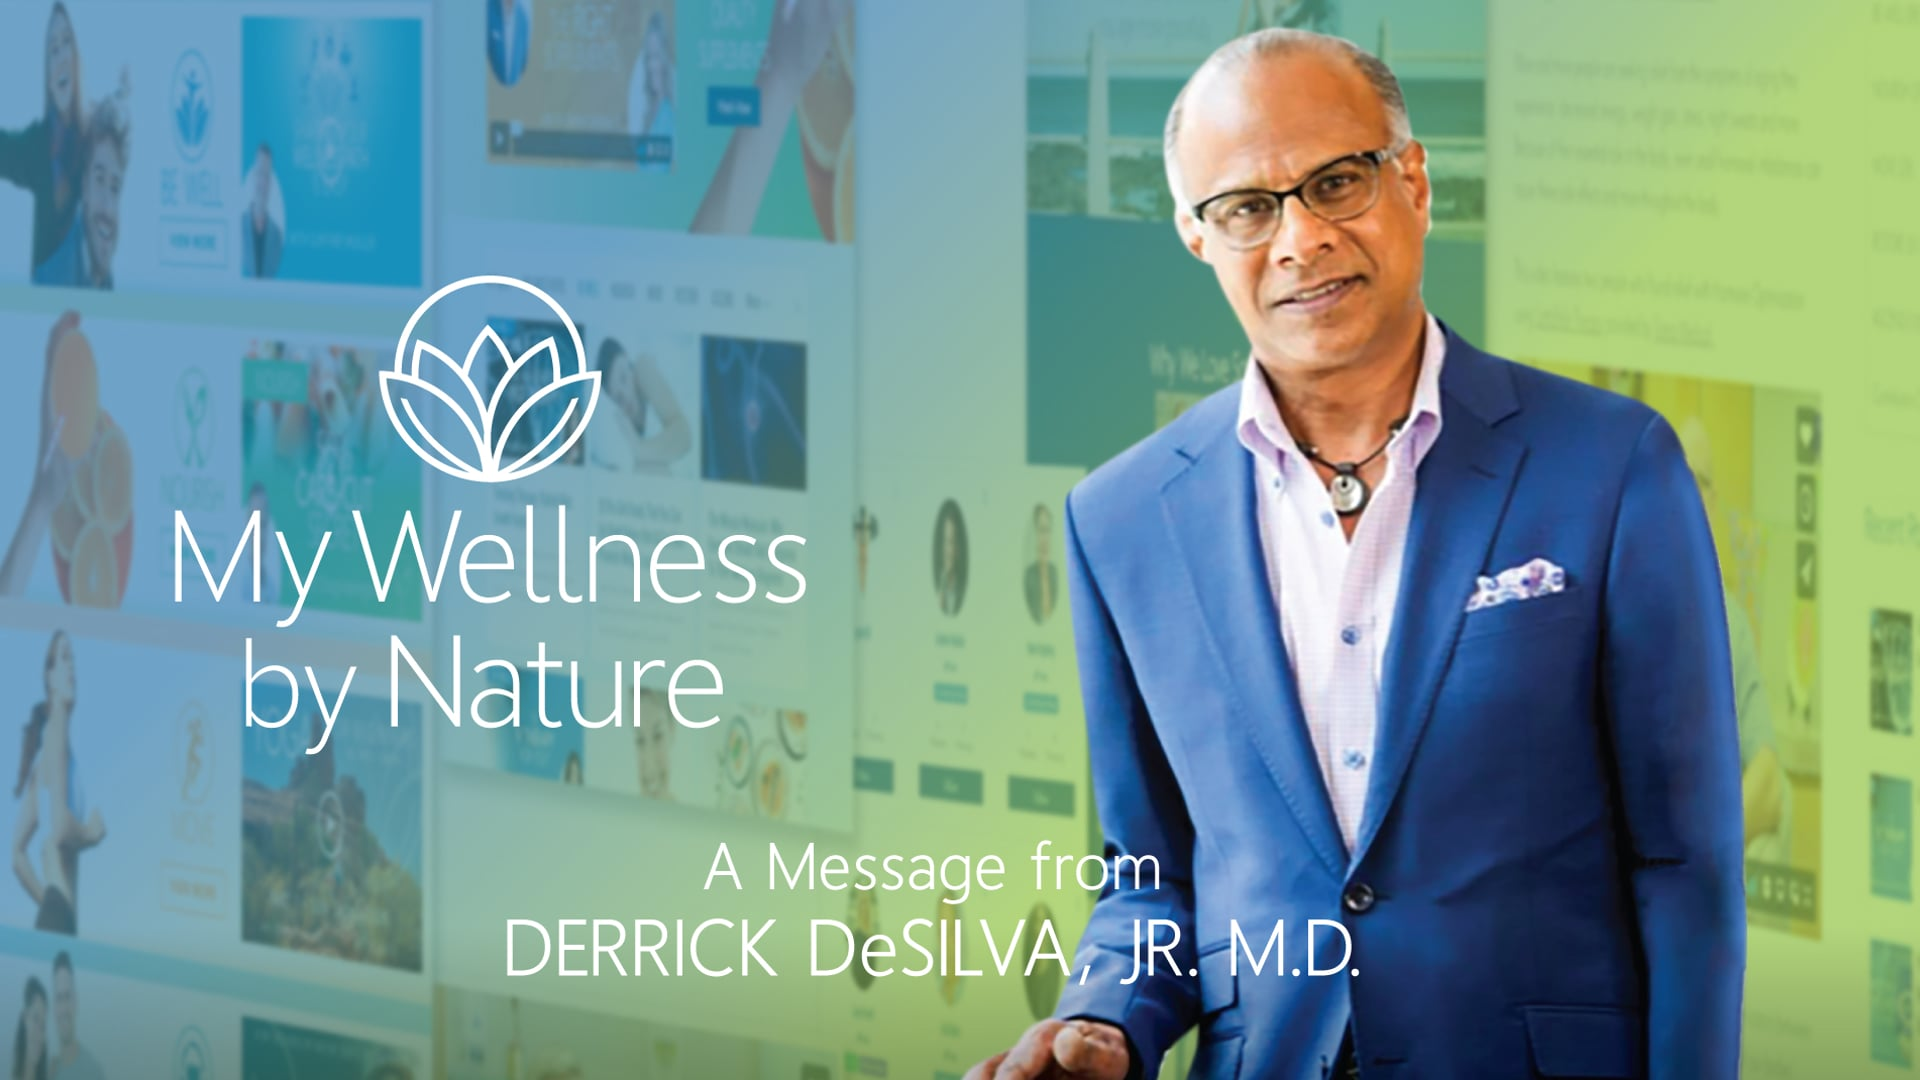 Dr. DeSilva Discusses the Importance of My Wellness by Nature